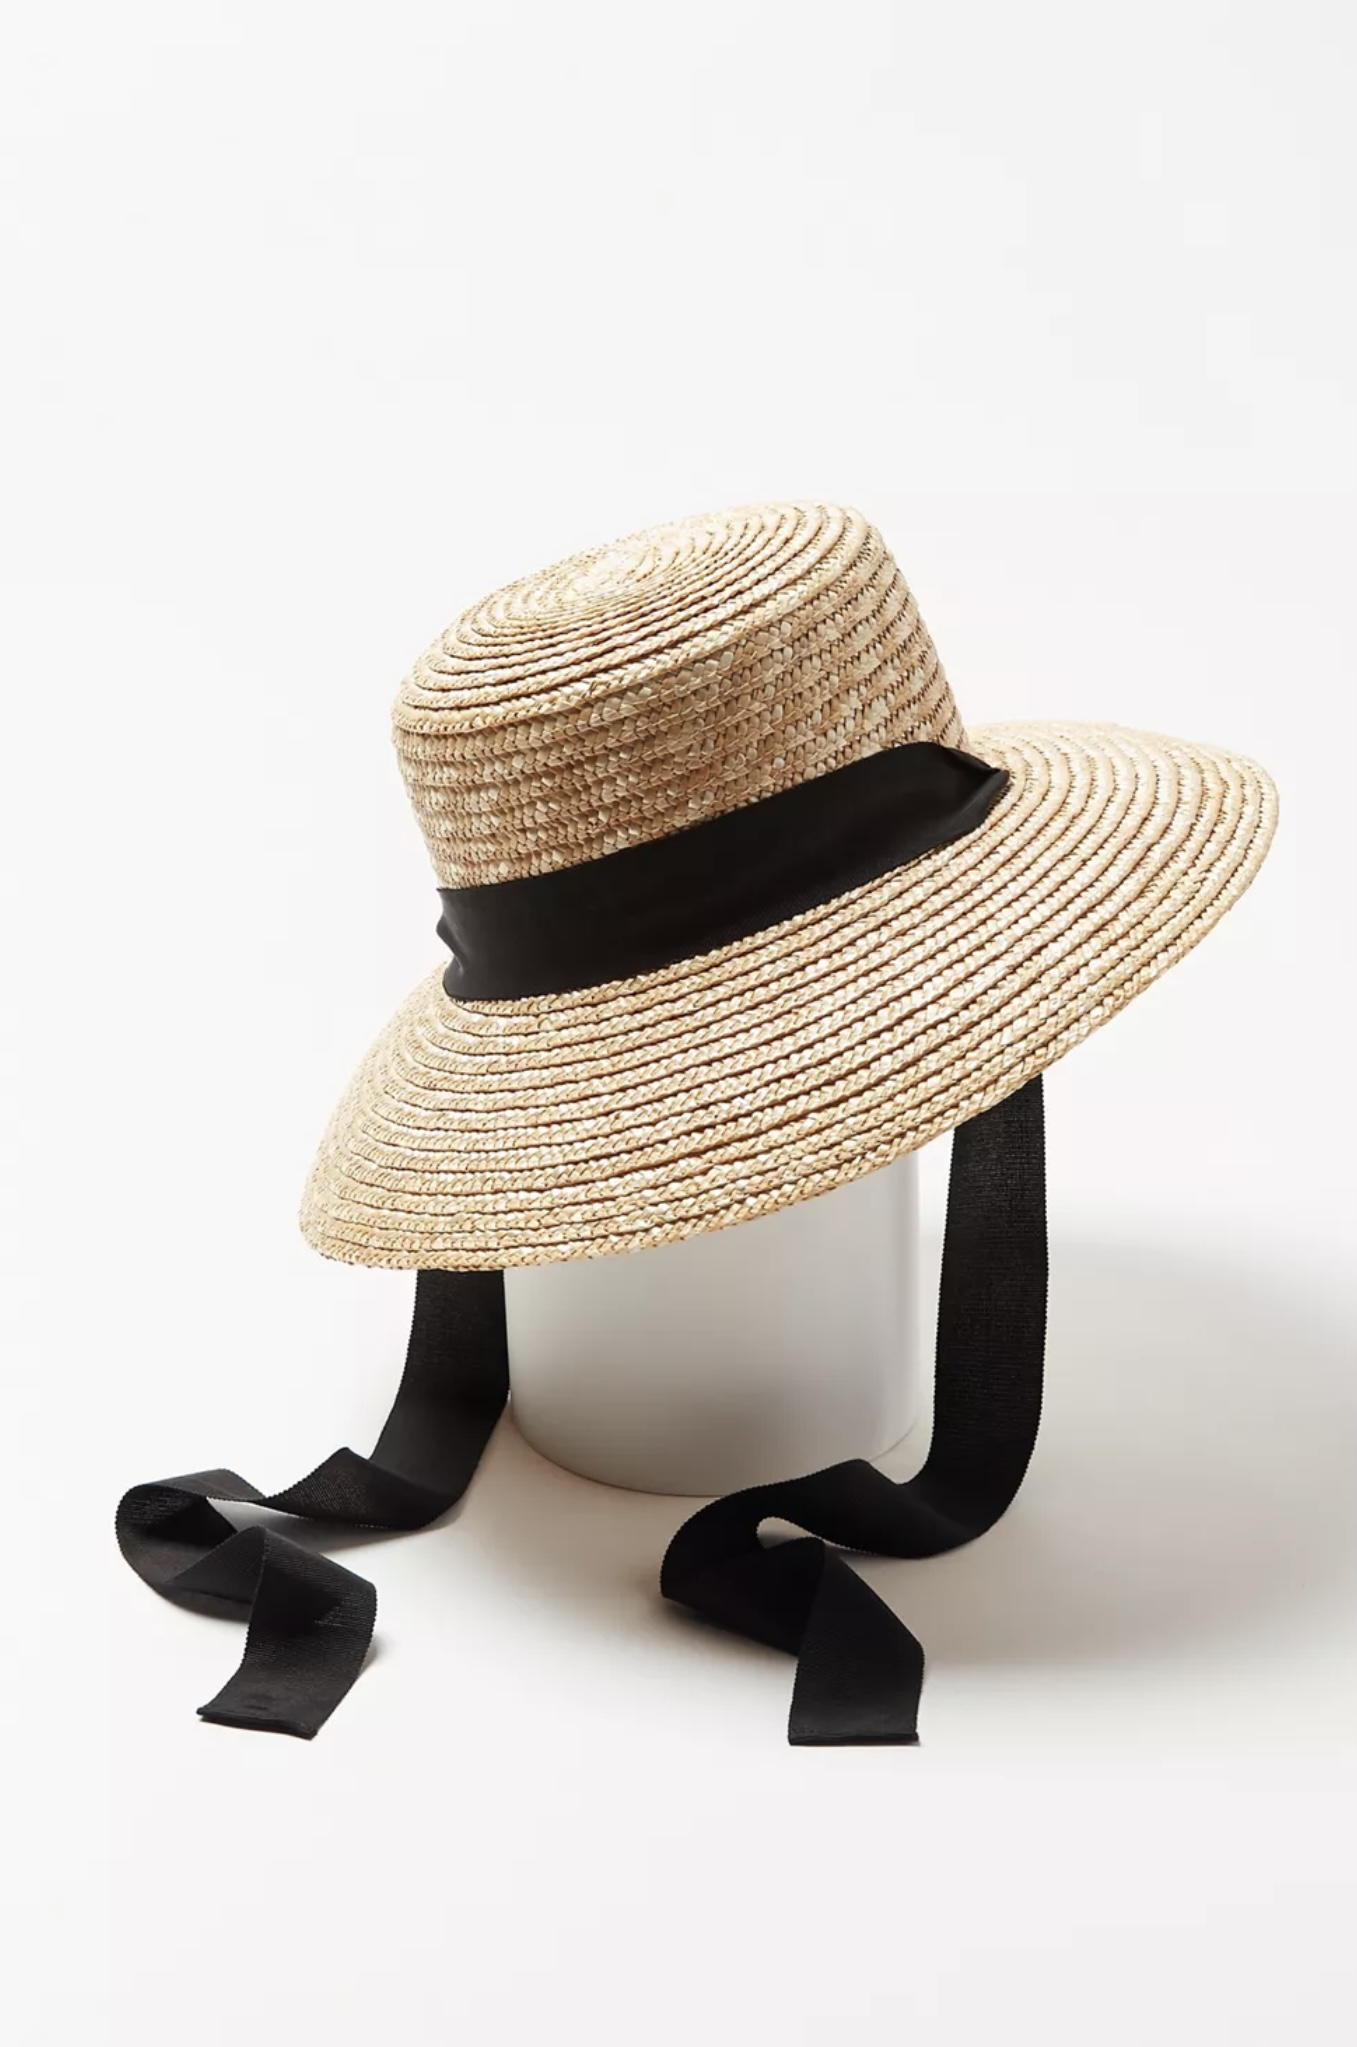 Urban Outfitters UO Scarf Tie Straw Bell Hat   A Few Must-Have Spring Accessories